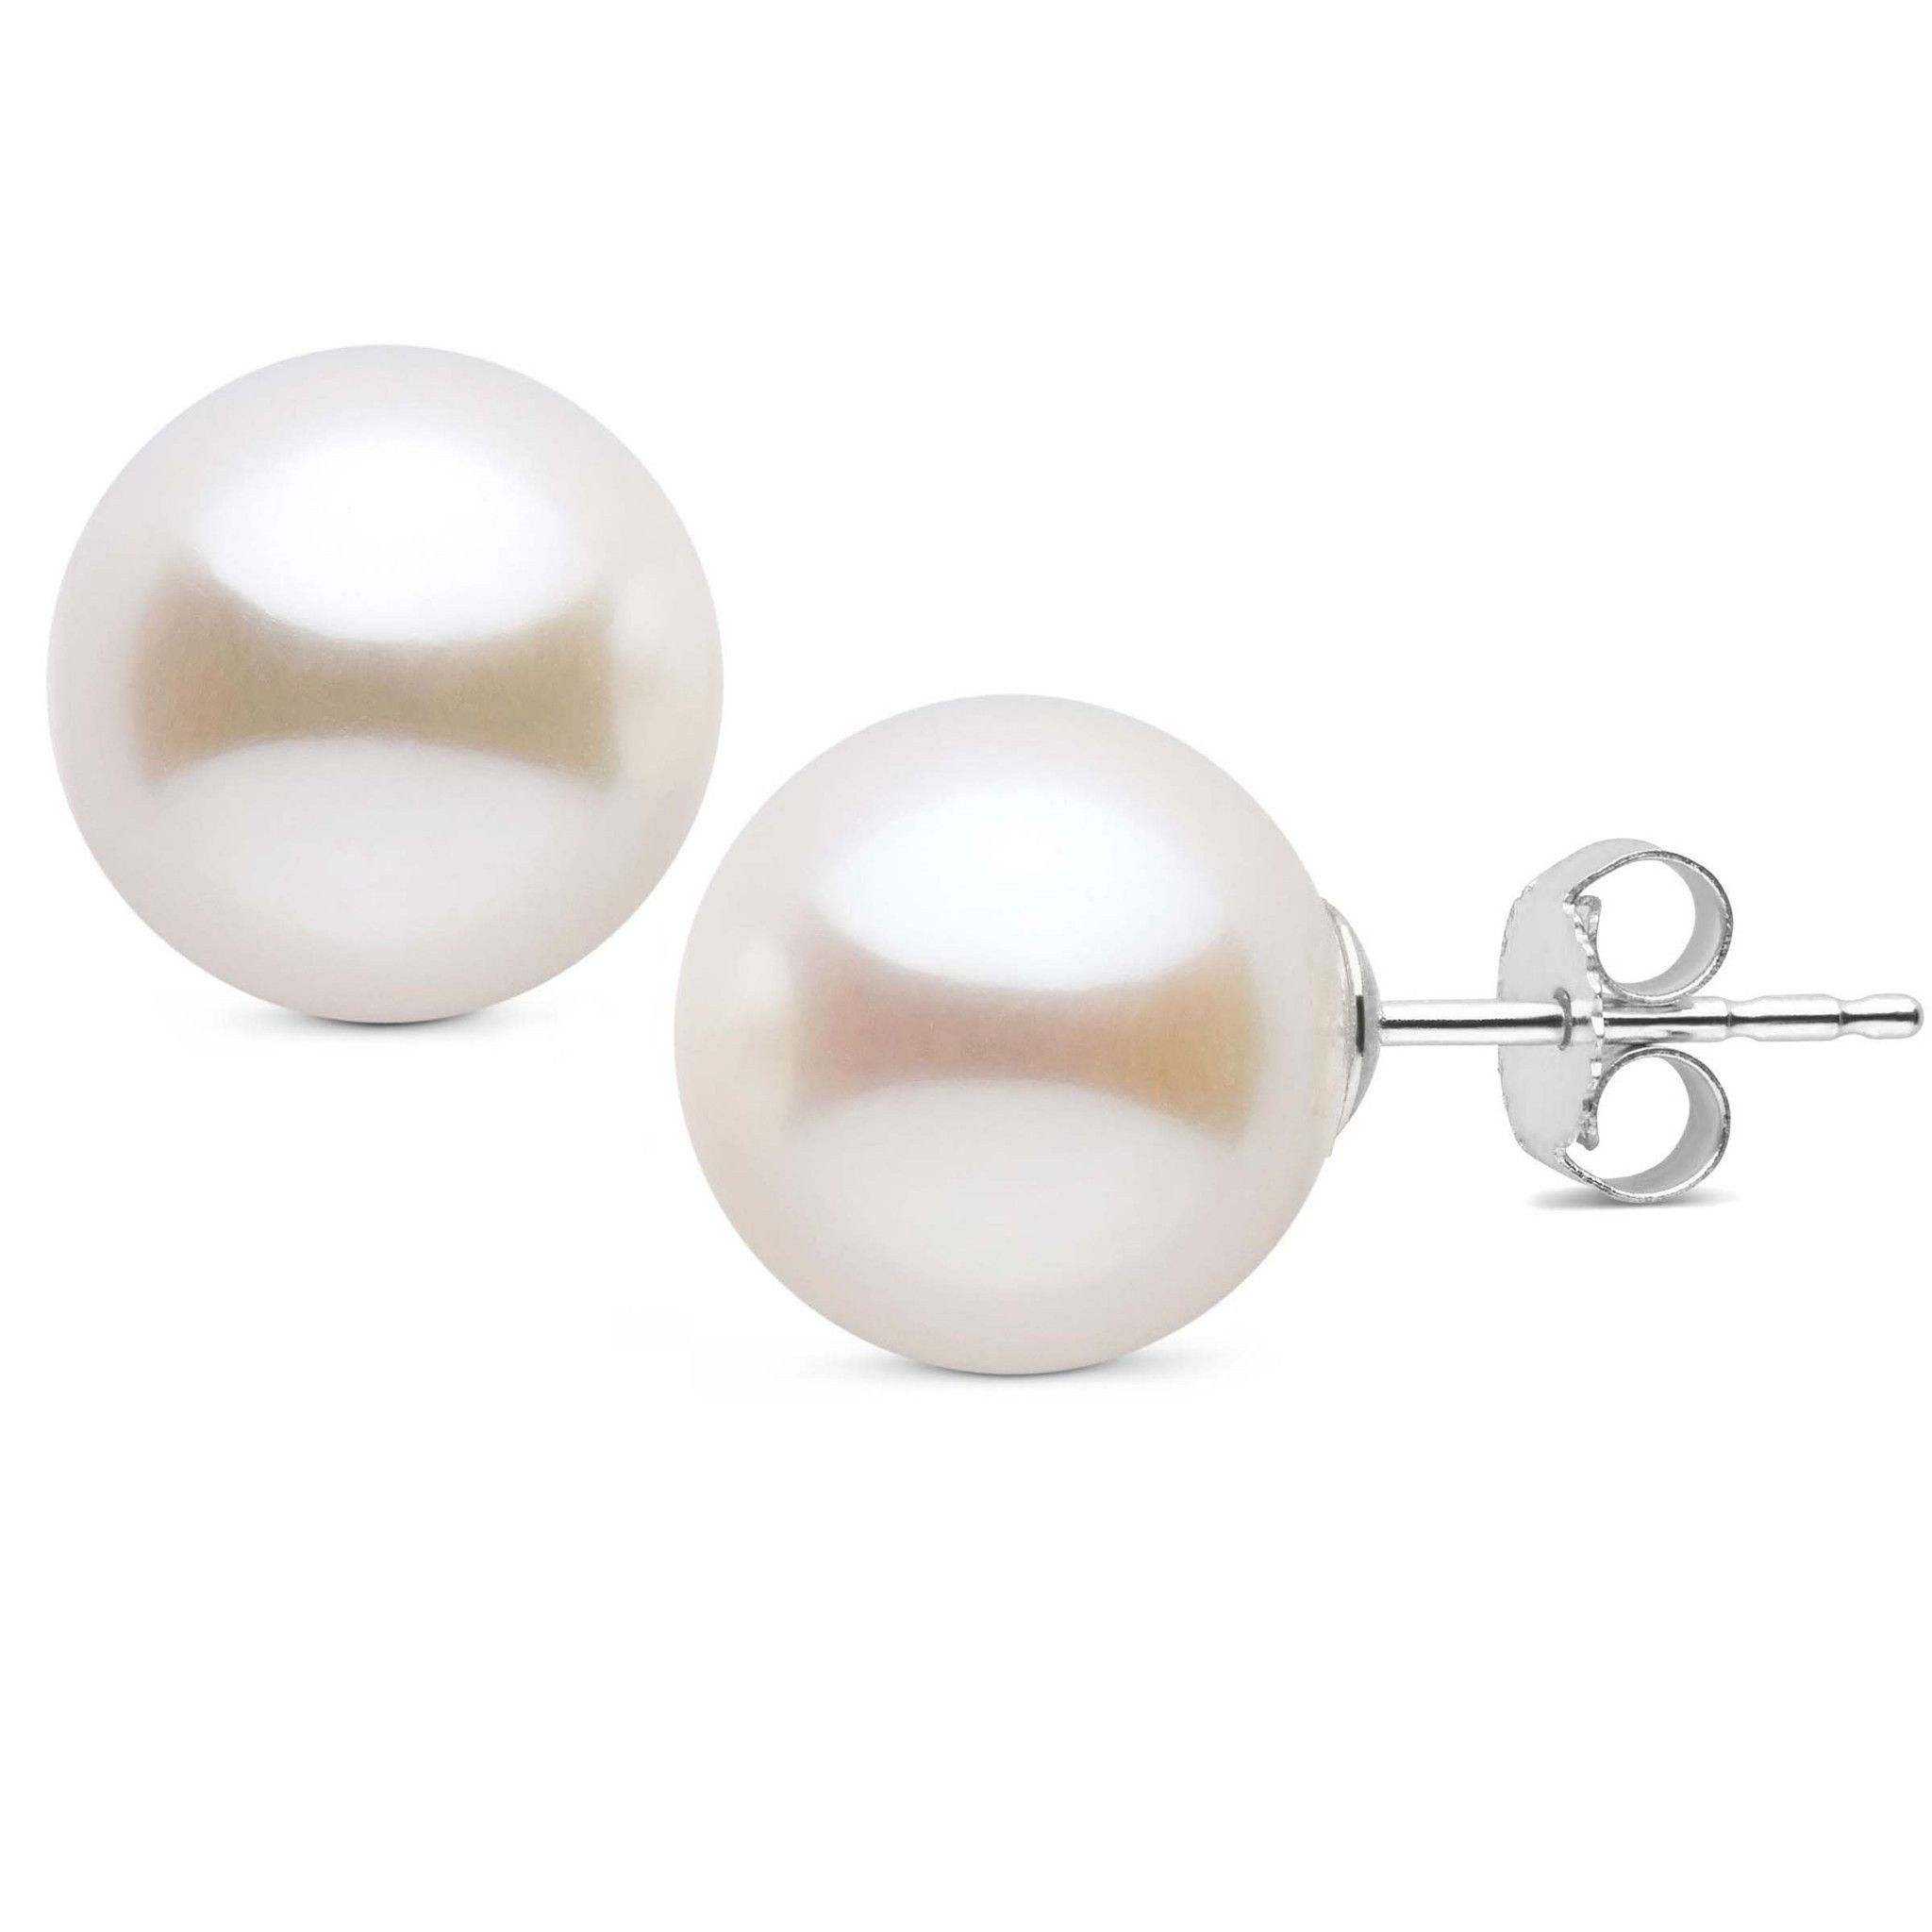 10.0-11.0 mm AAA White Freshwater Pearl Stud Earrings